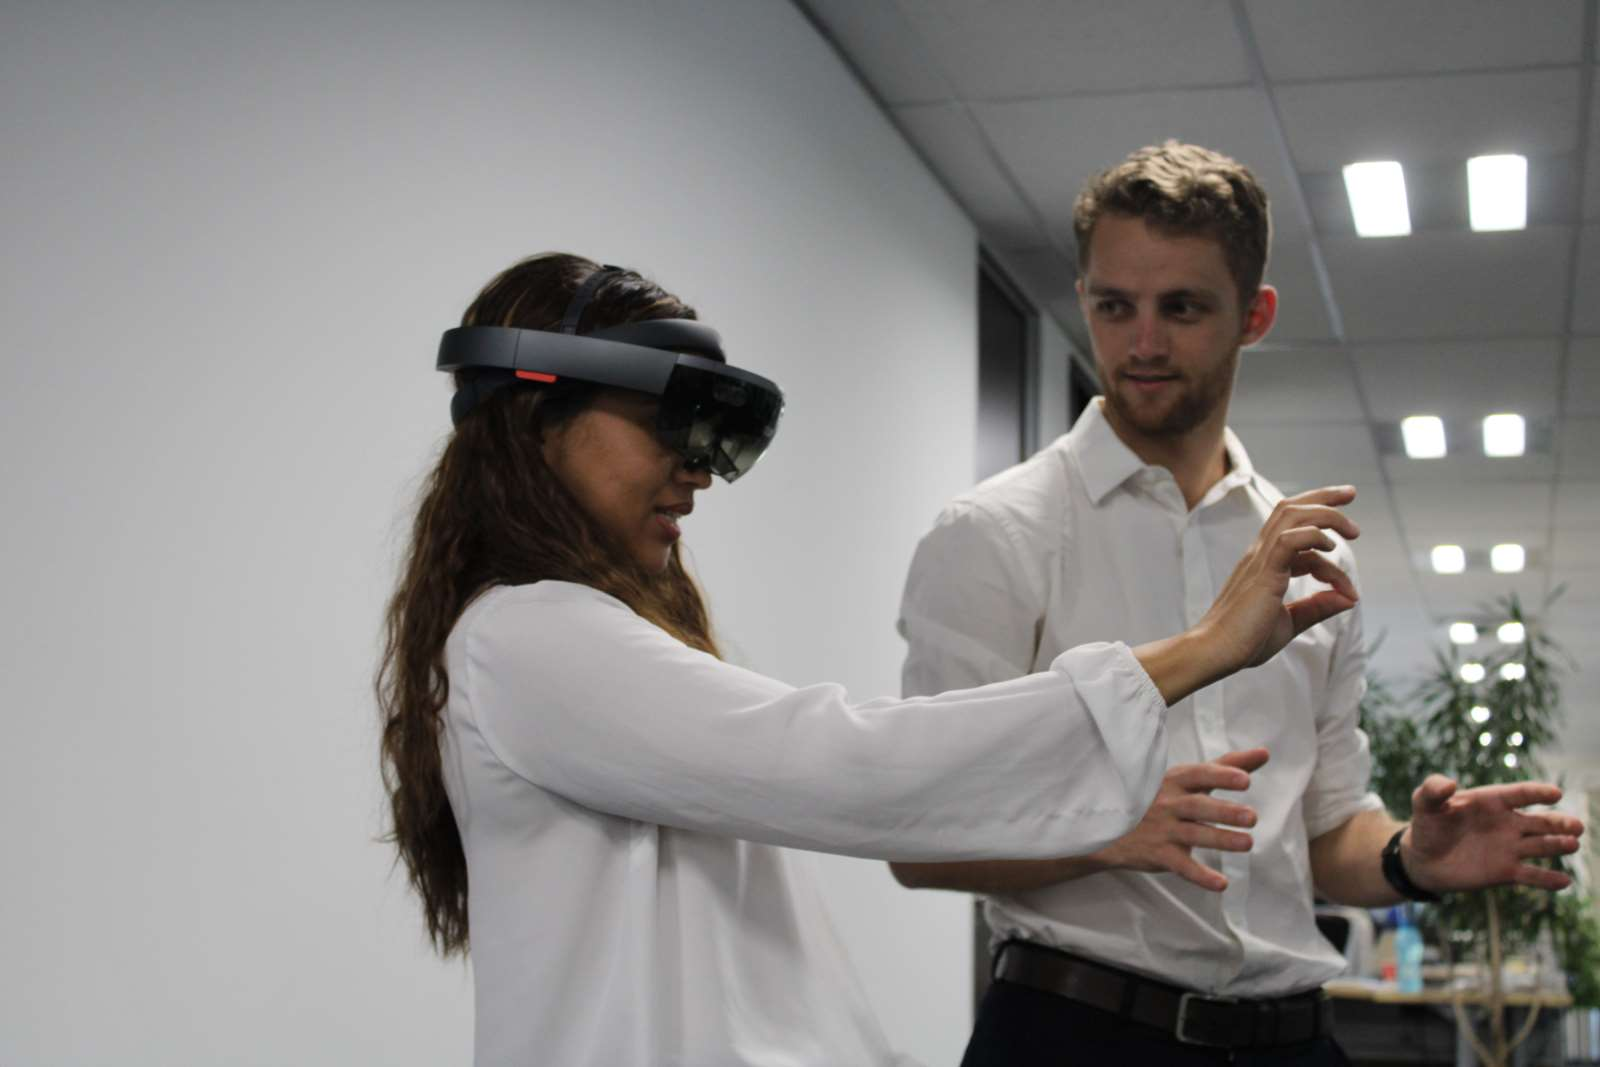 Interactive workshop on augmented and virtual reality, local office South Africa